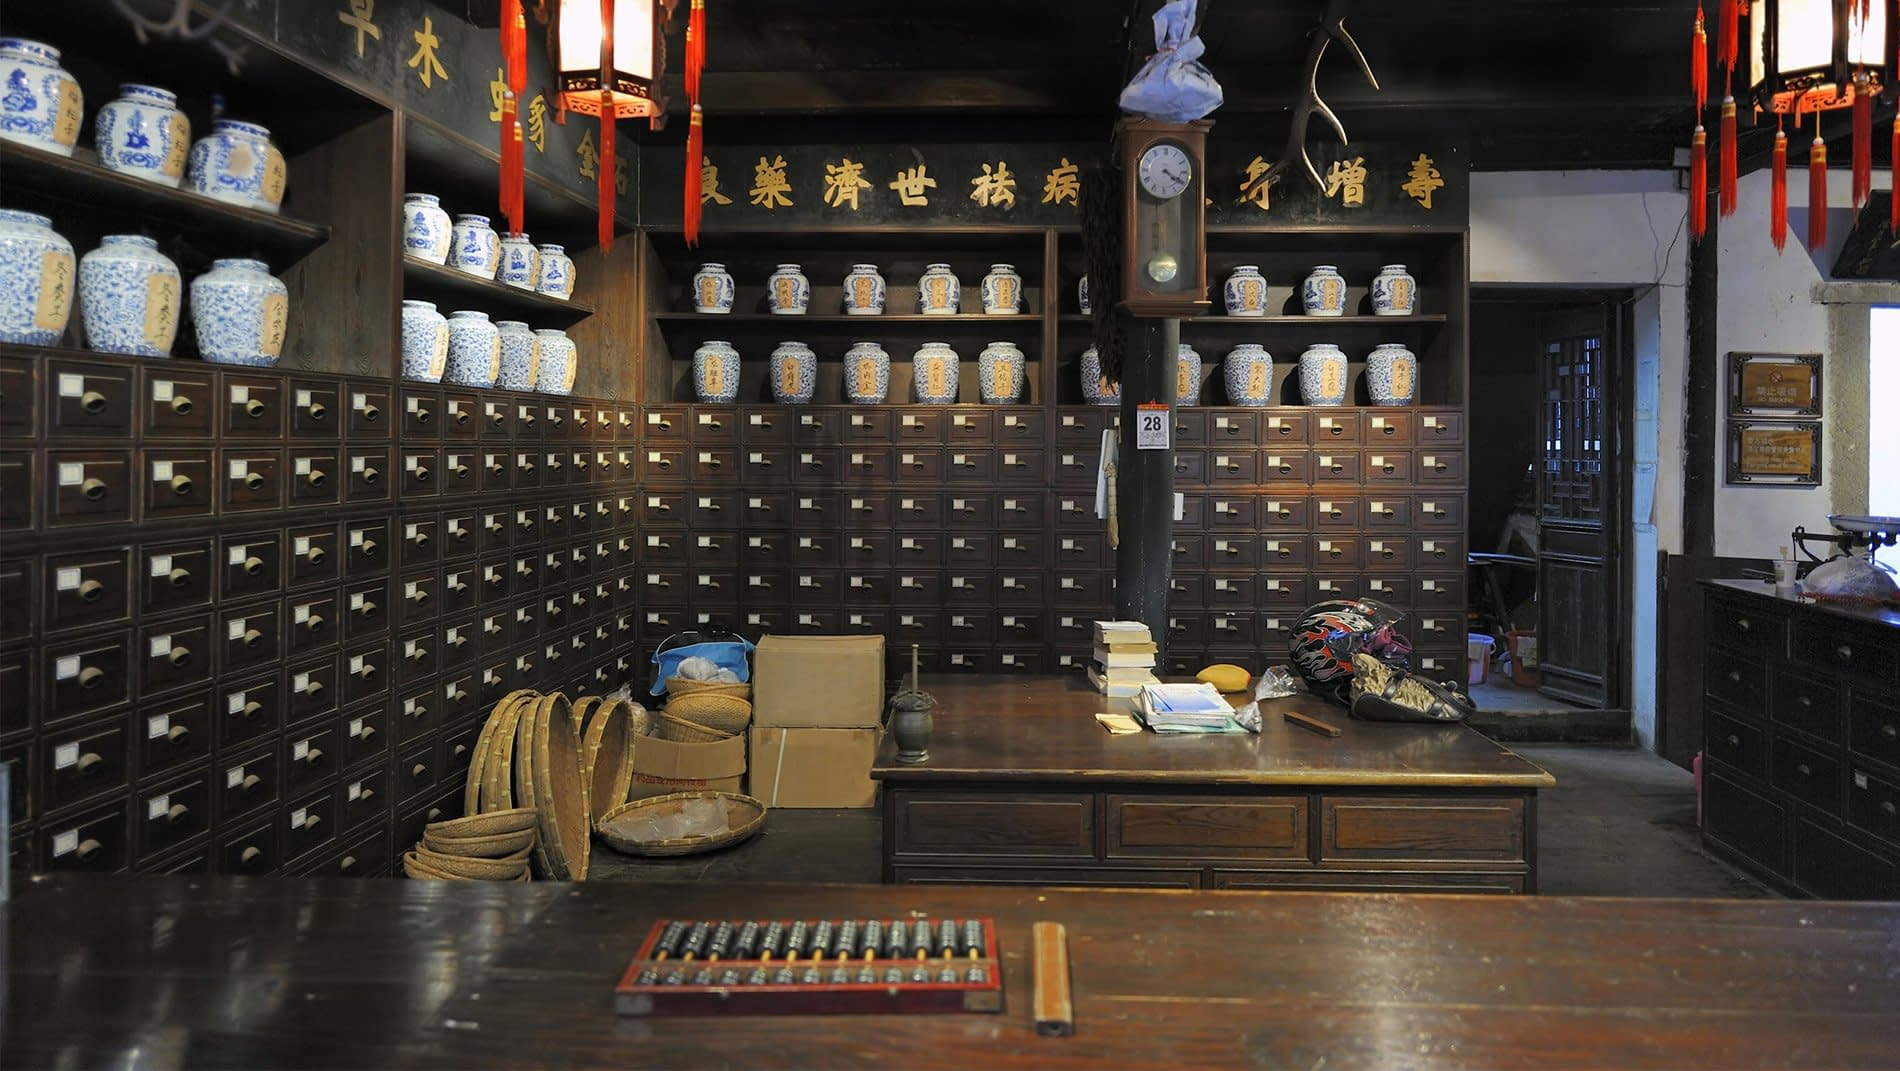 Traditional Chinese Pharmacy~From acupuncture to a recent Nobel-prize winning cure for malaria, traditional Chinese medicine contains much wisdom. Learn about its day to day application in this beautiful, ancient pharmacy.